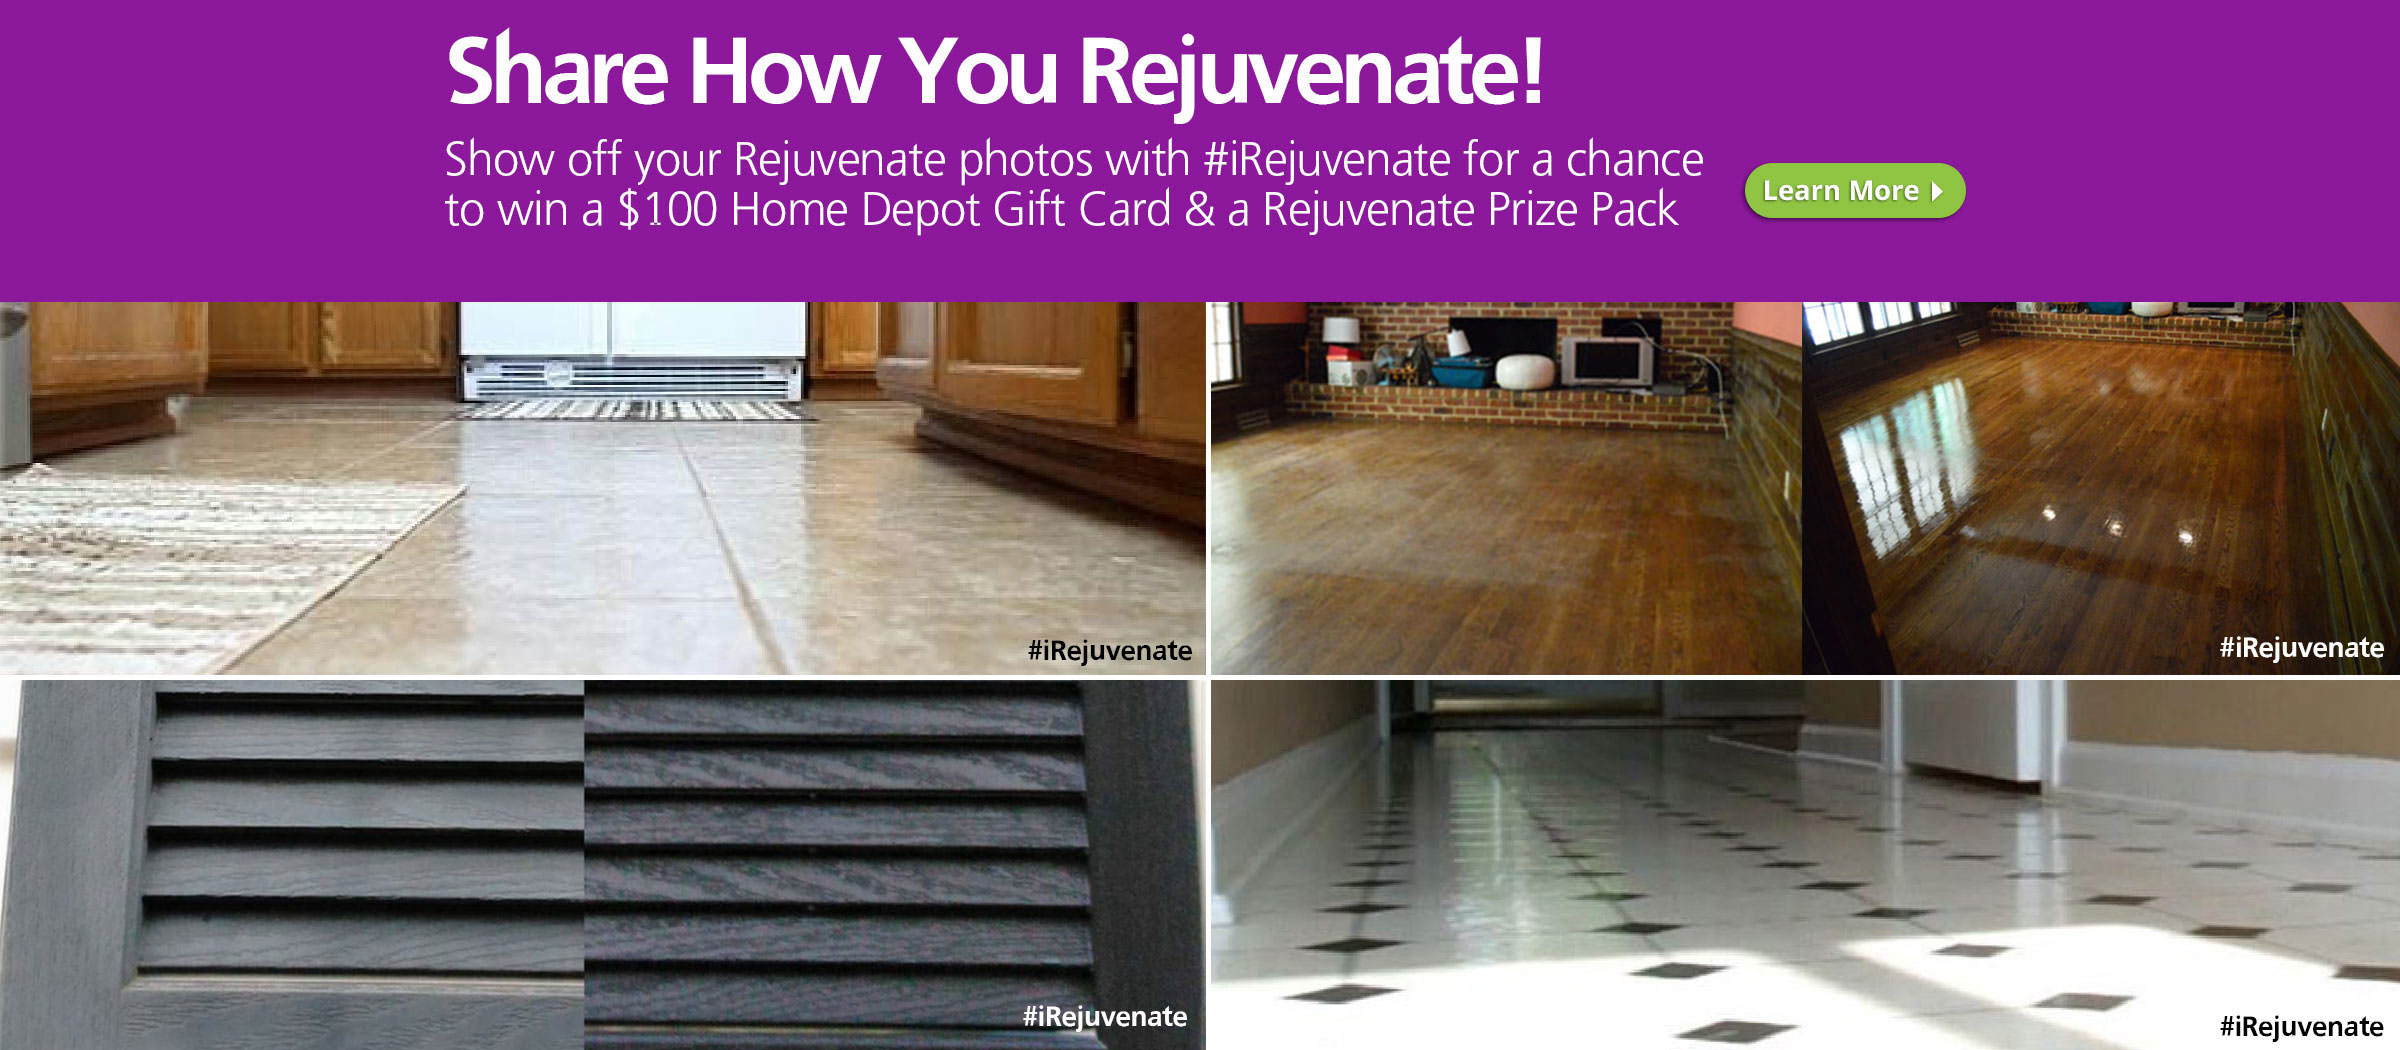 Share How You Rejuvenate Sweepstakes